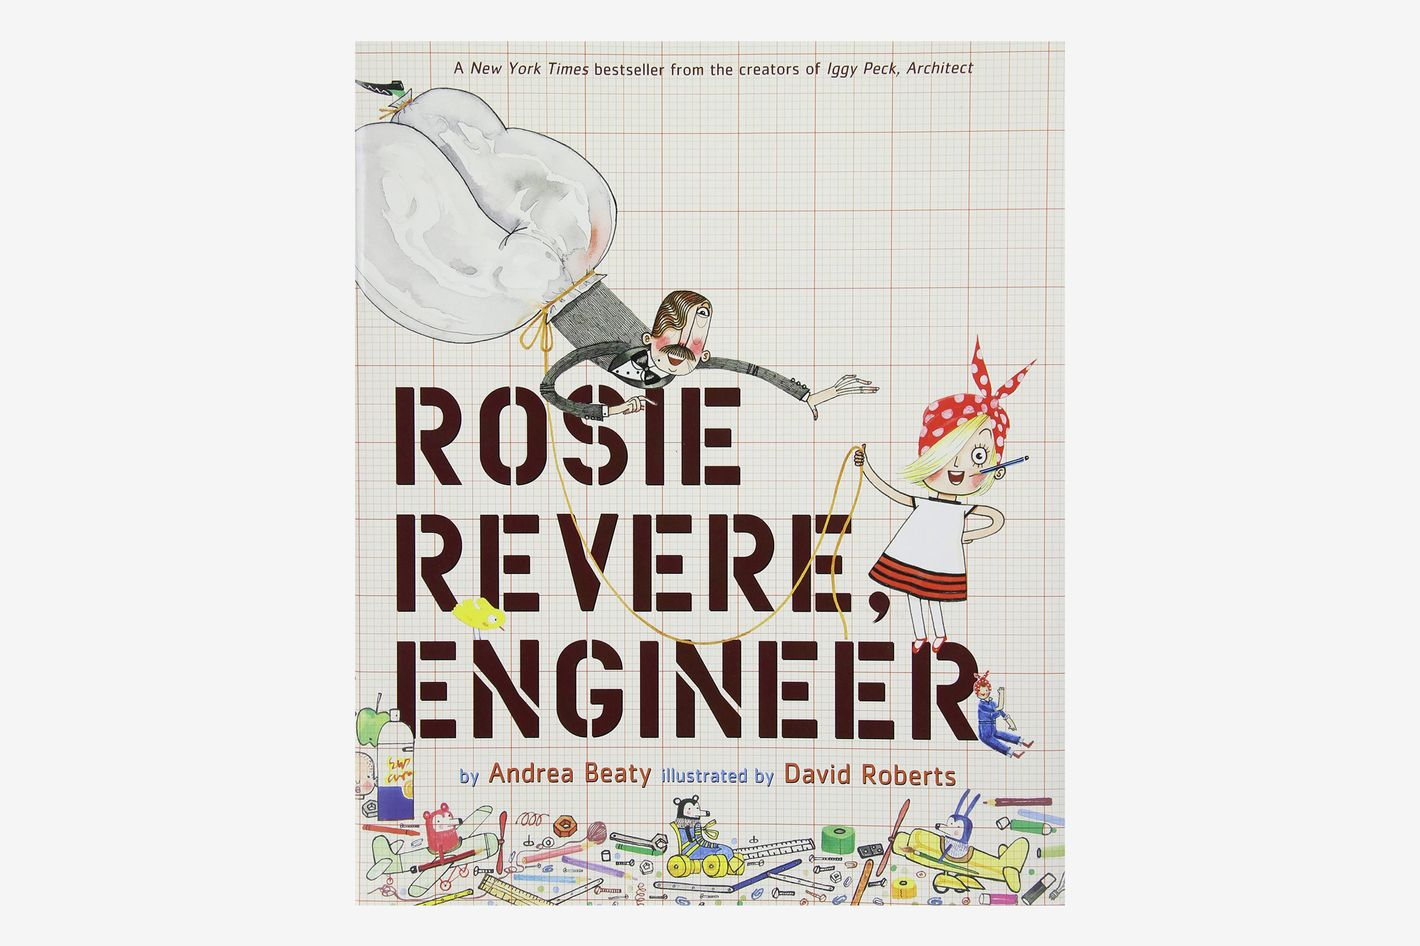 Rosie Revere, Engineer, by Andrea Beaty